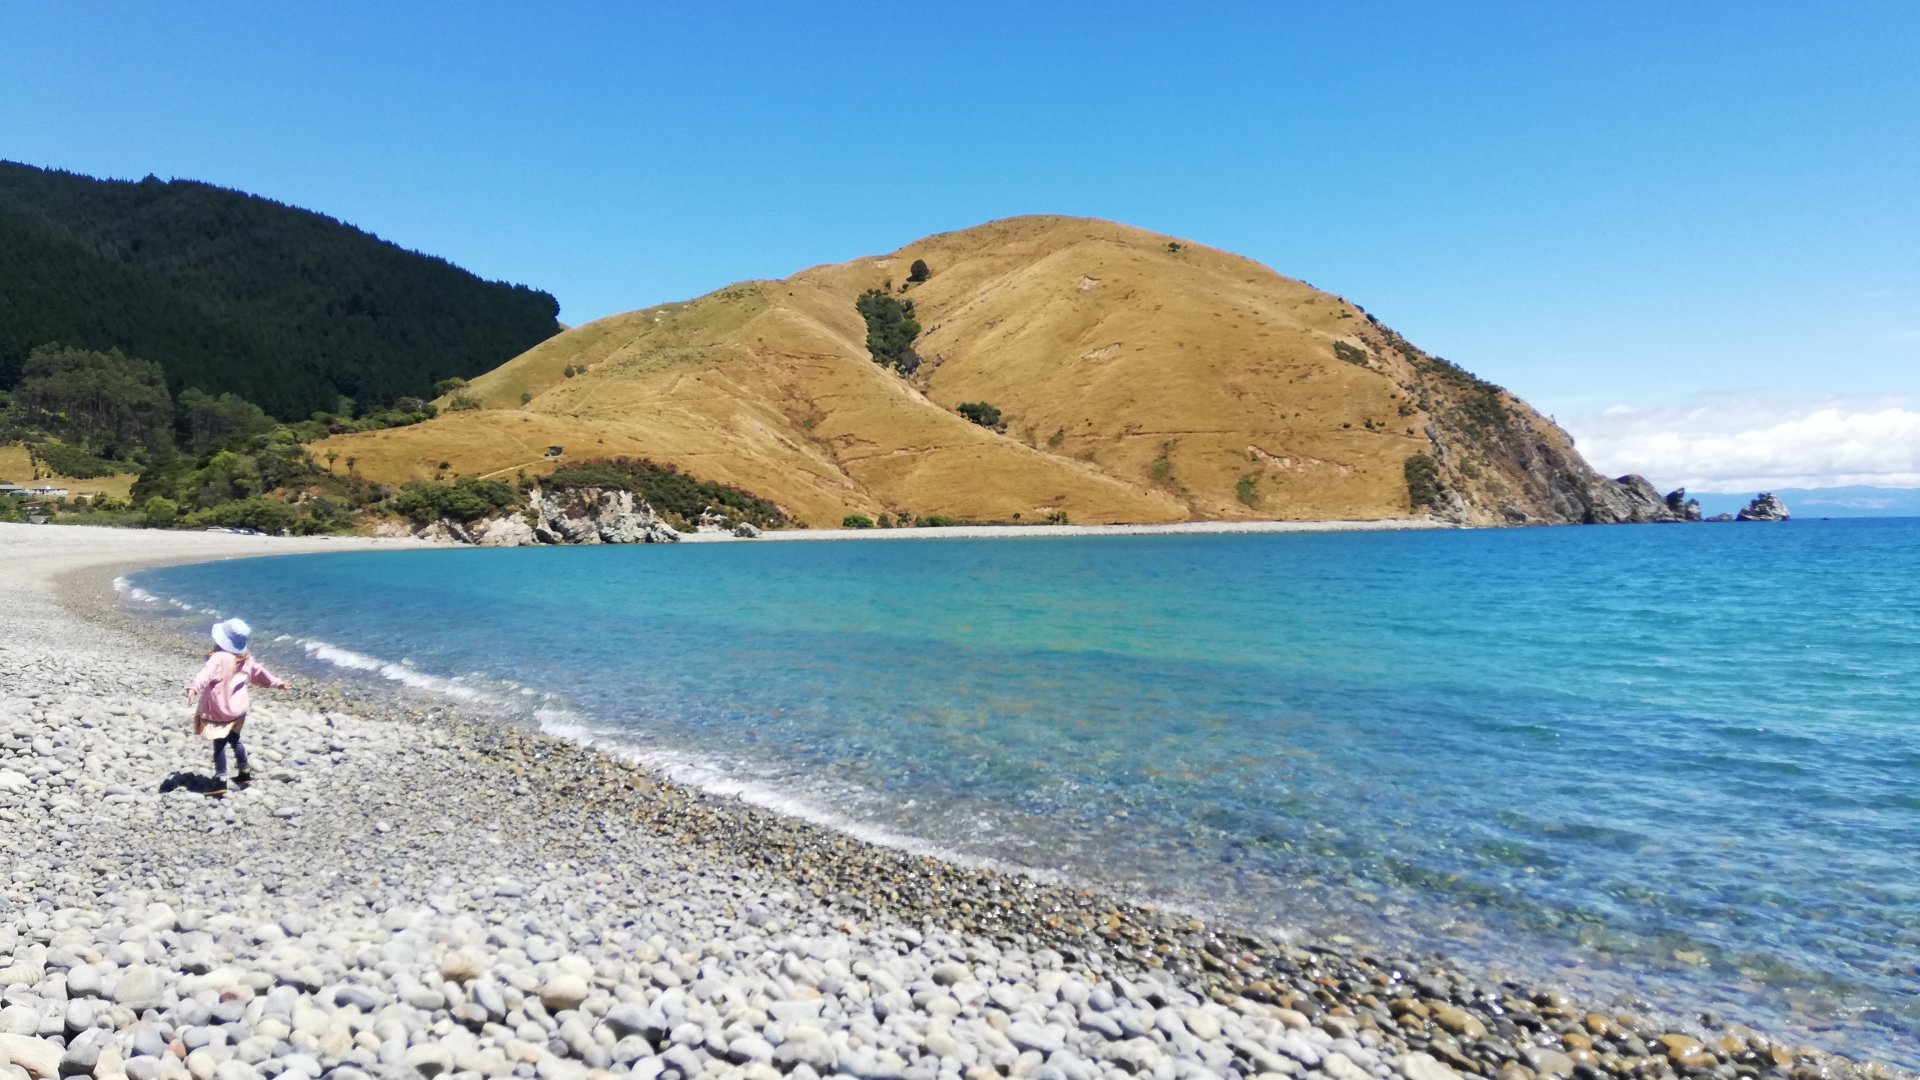 Brittany Packer's photo of Cable Bay was a randomly selected winner of Nelson City Council's social media competition.